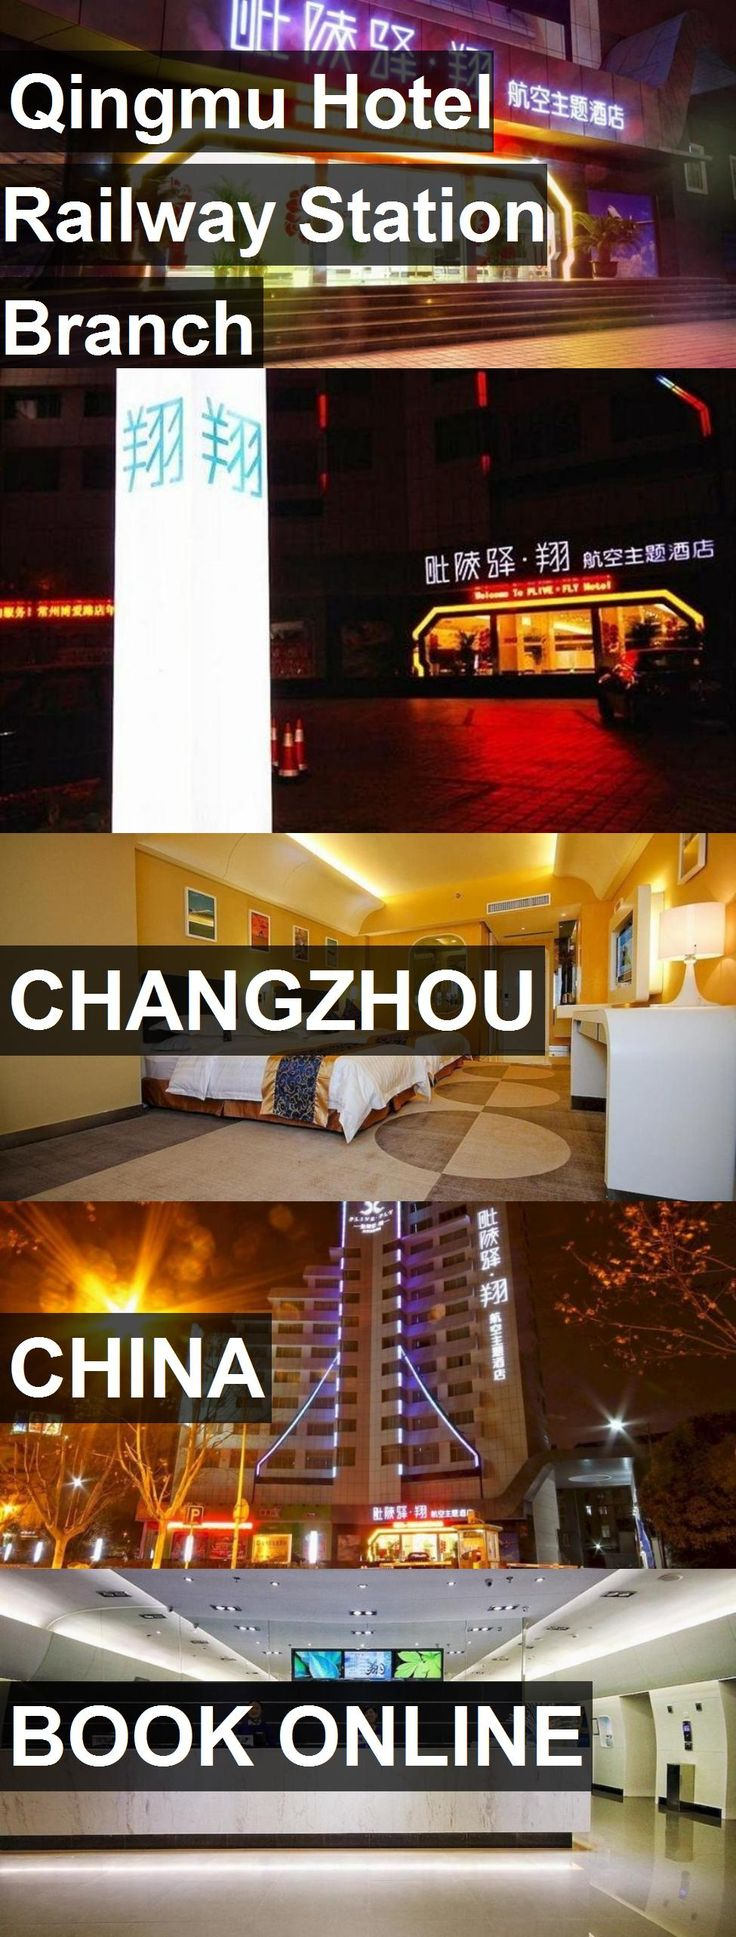 Hotel Qingmu Hotel Railway Station Branch in Changzhou, China. For more information, photos, reviews and best prices please follow the link. #China #Changzhou #QingmuHotelRailwayStationBranch #hotel #travel #vacation